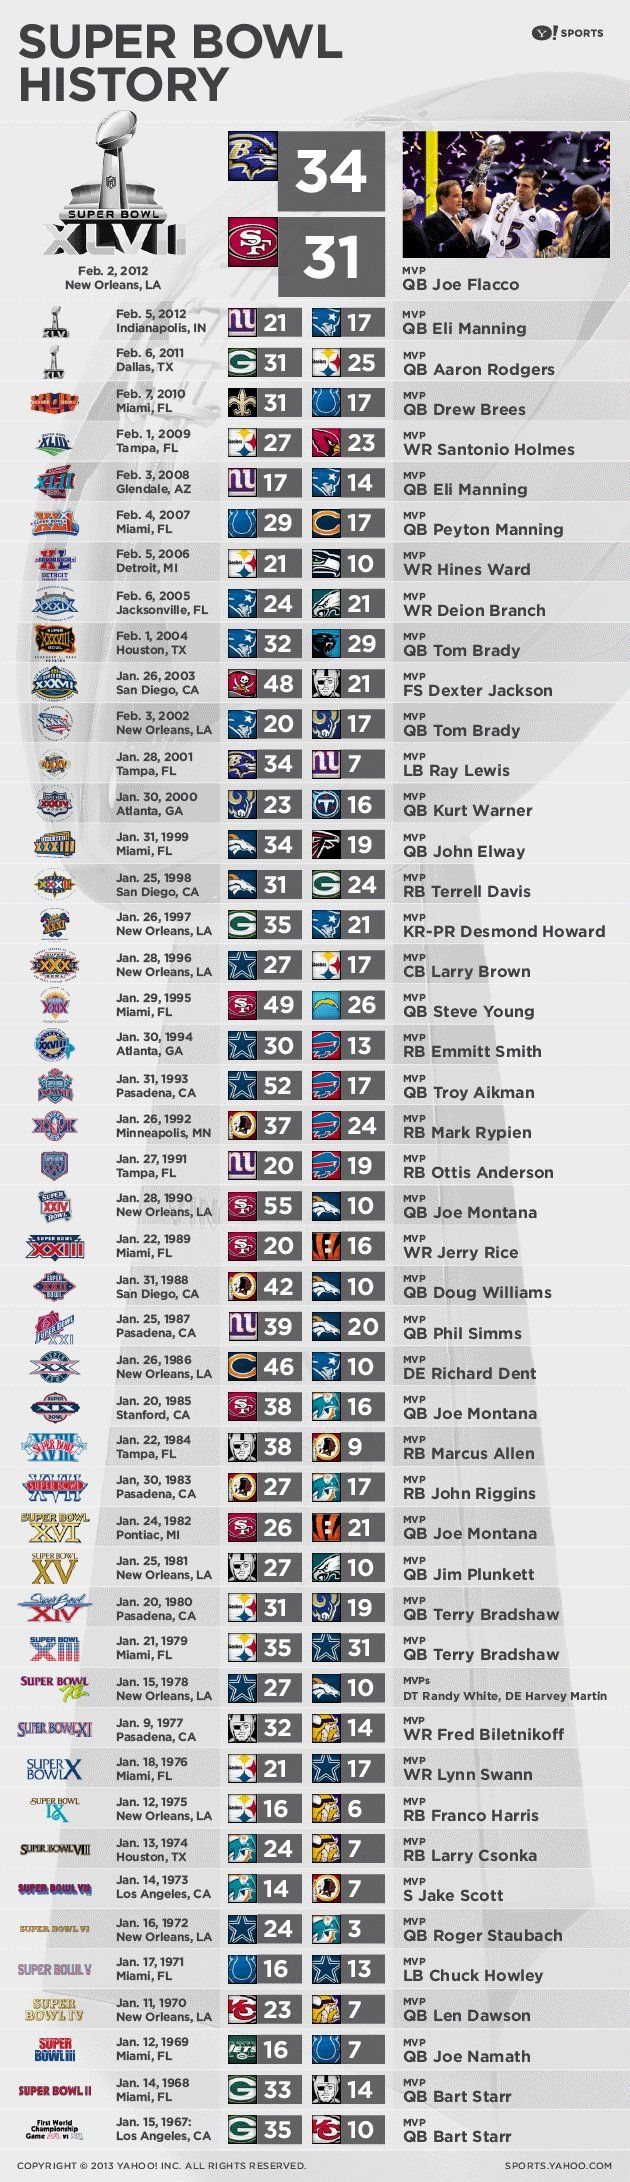 See every #SuperBowl champion and Super Bowl MVP #infographic except for 2013 and 2014. 2014 means more to me because Seahawks beat the colts 43-8 and it's the 1st Super Bowl Championship the Hawks won. GO HAWKS!